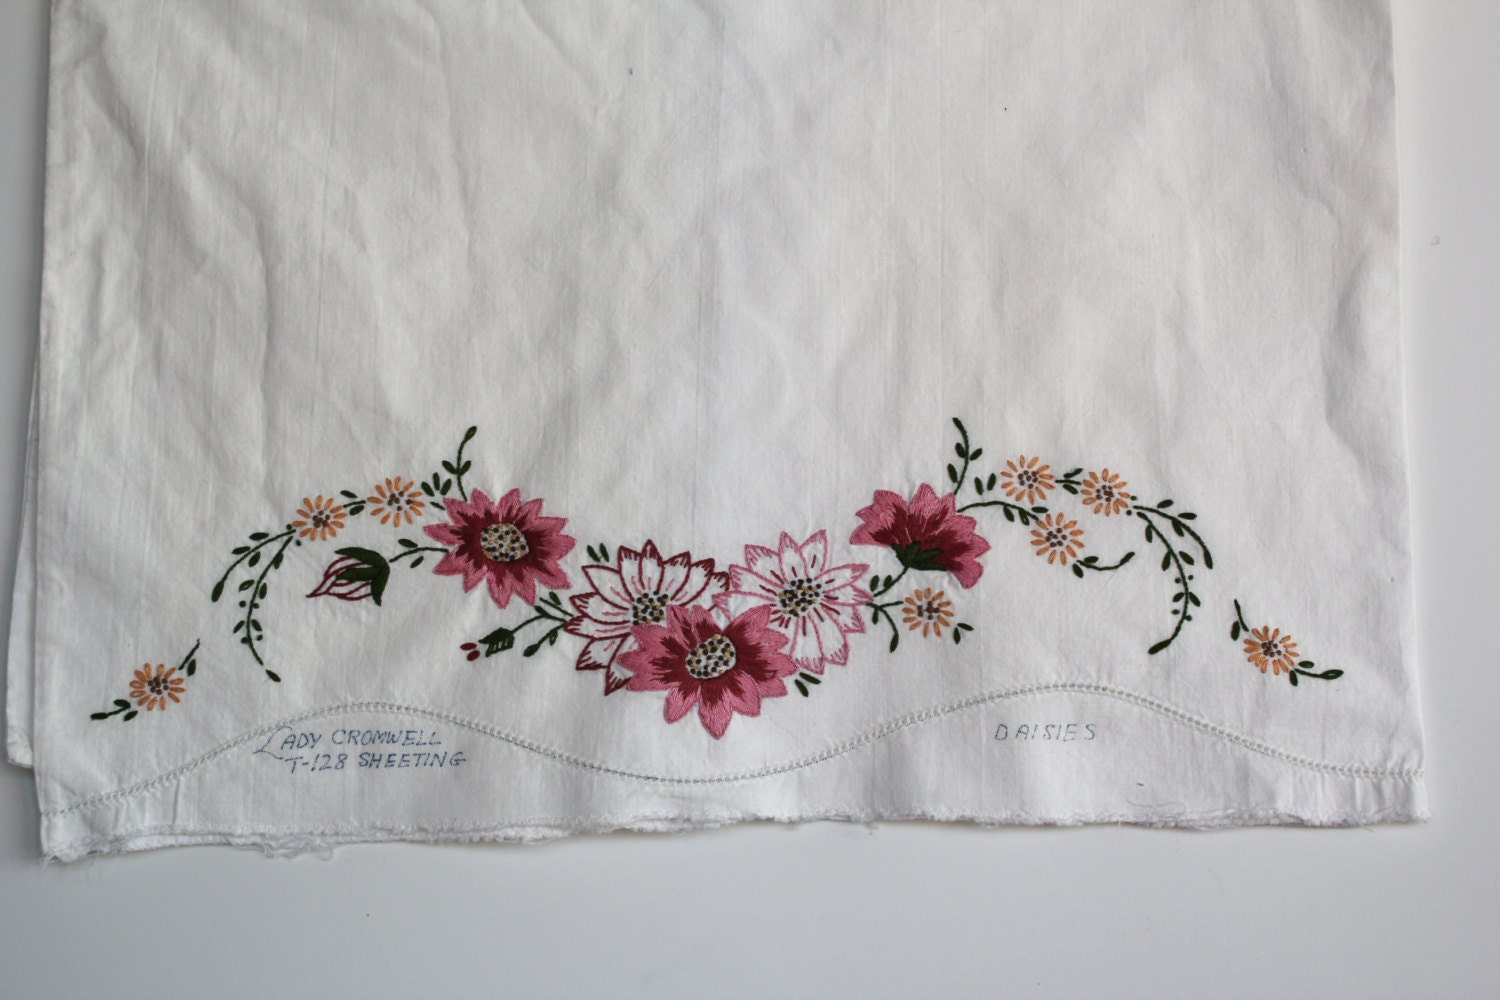 Lady Cromwell Hand Embroidered Pillow Case Vintage Embroidered Flower Pillowcase - GoldDaisy